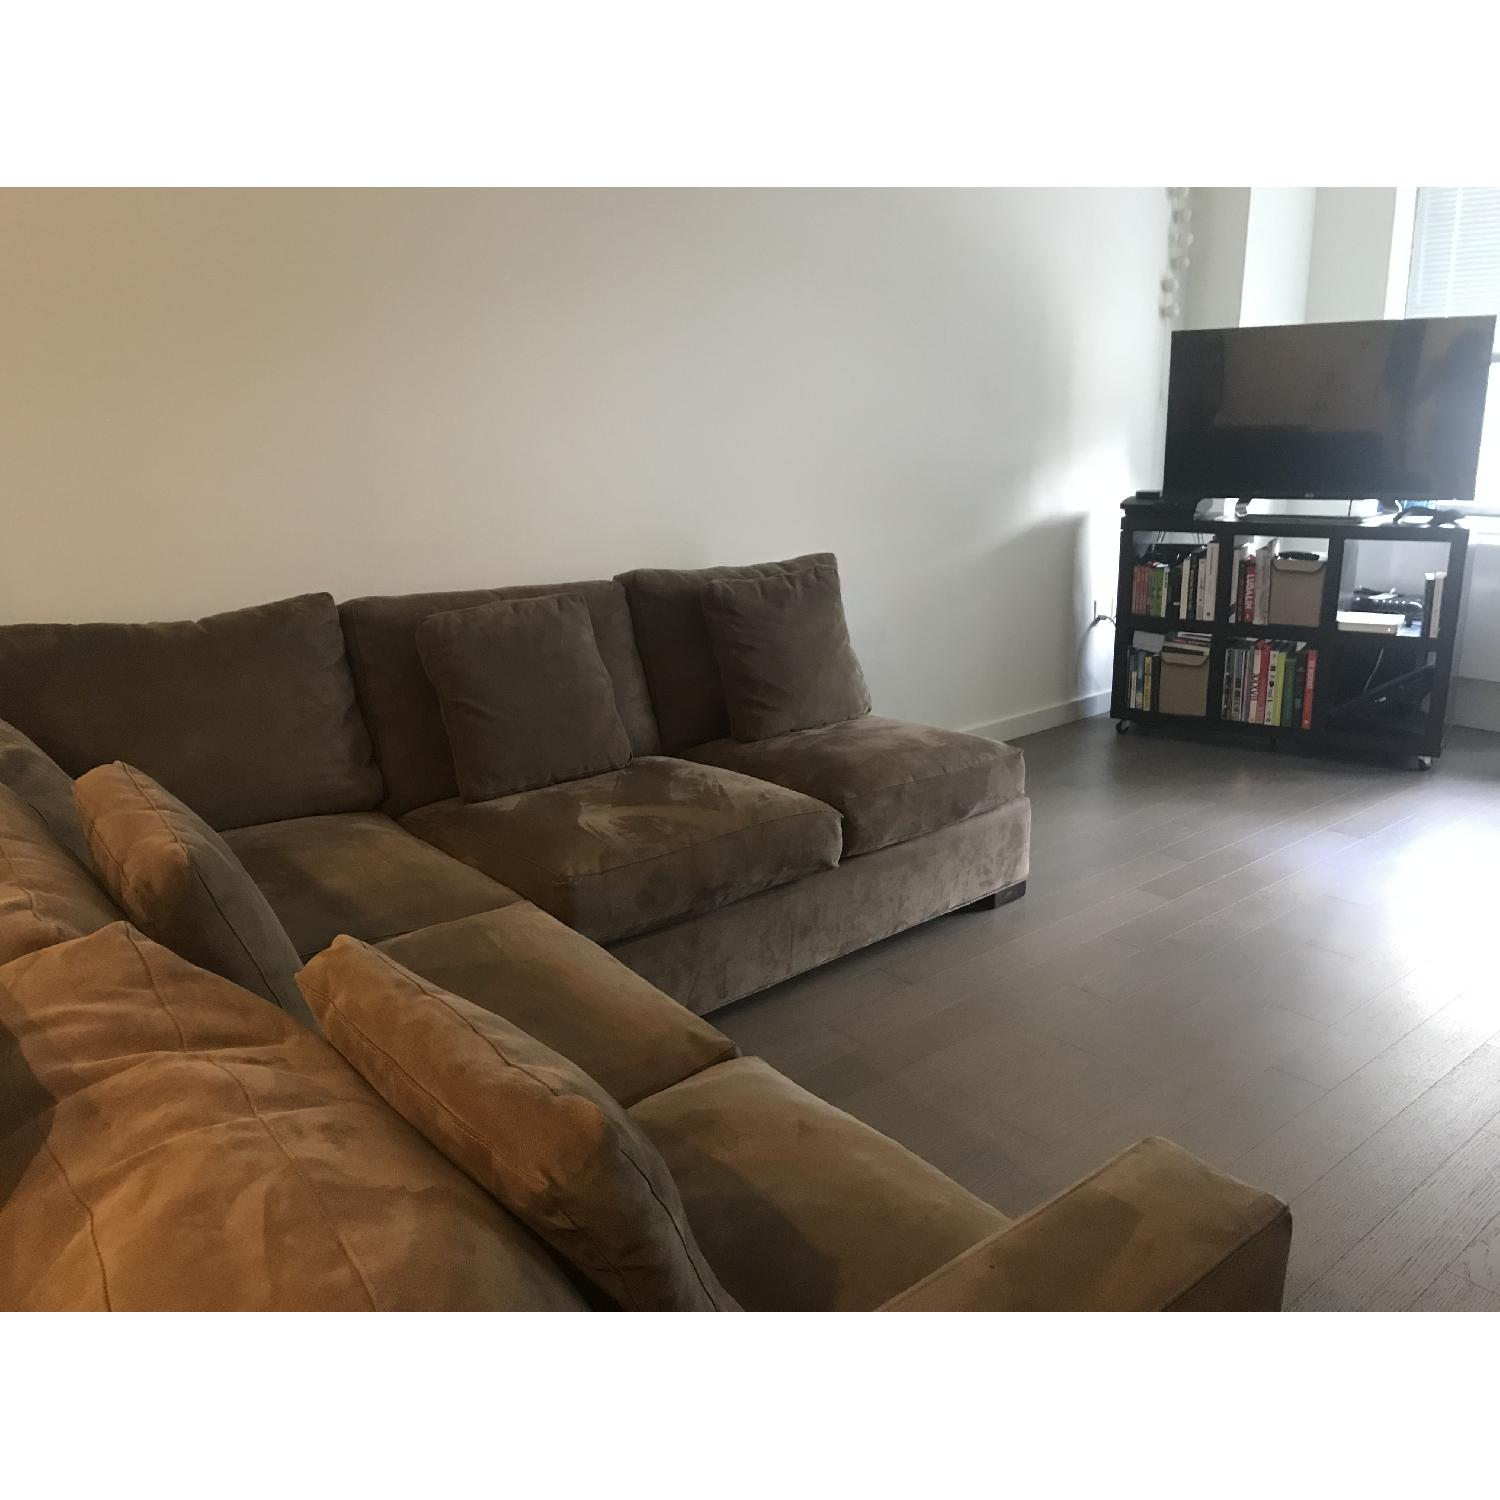 Crate & Barrel Axis 3-Piece Sectional Sofa - image-8